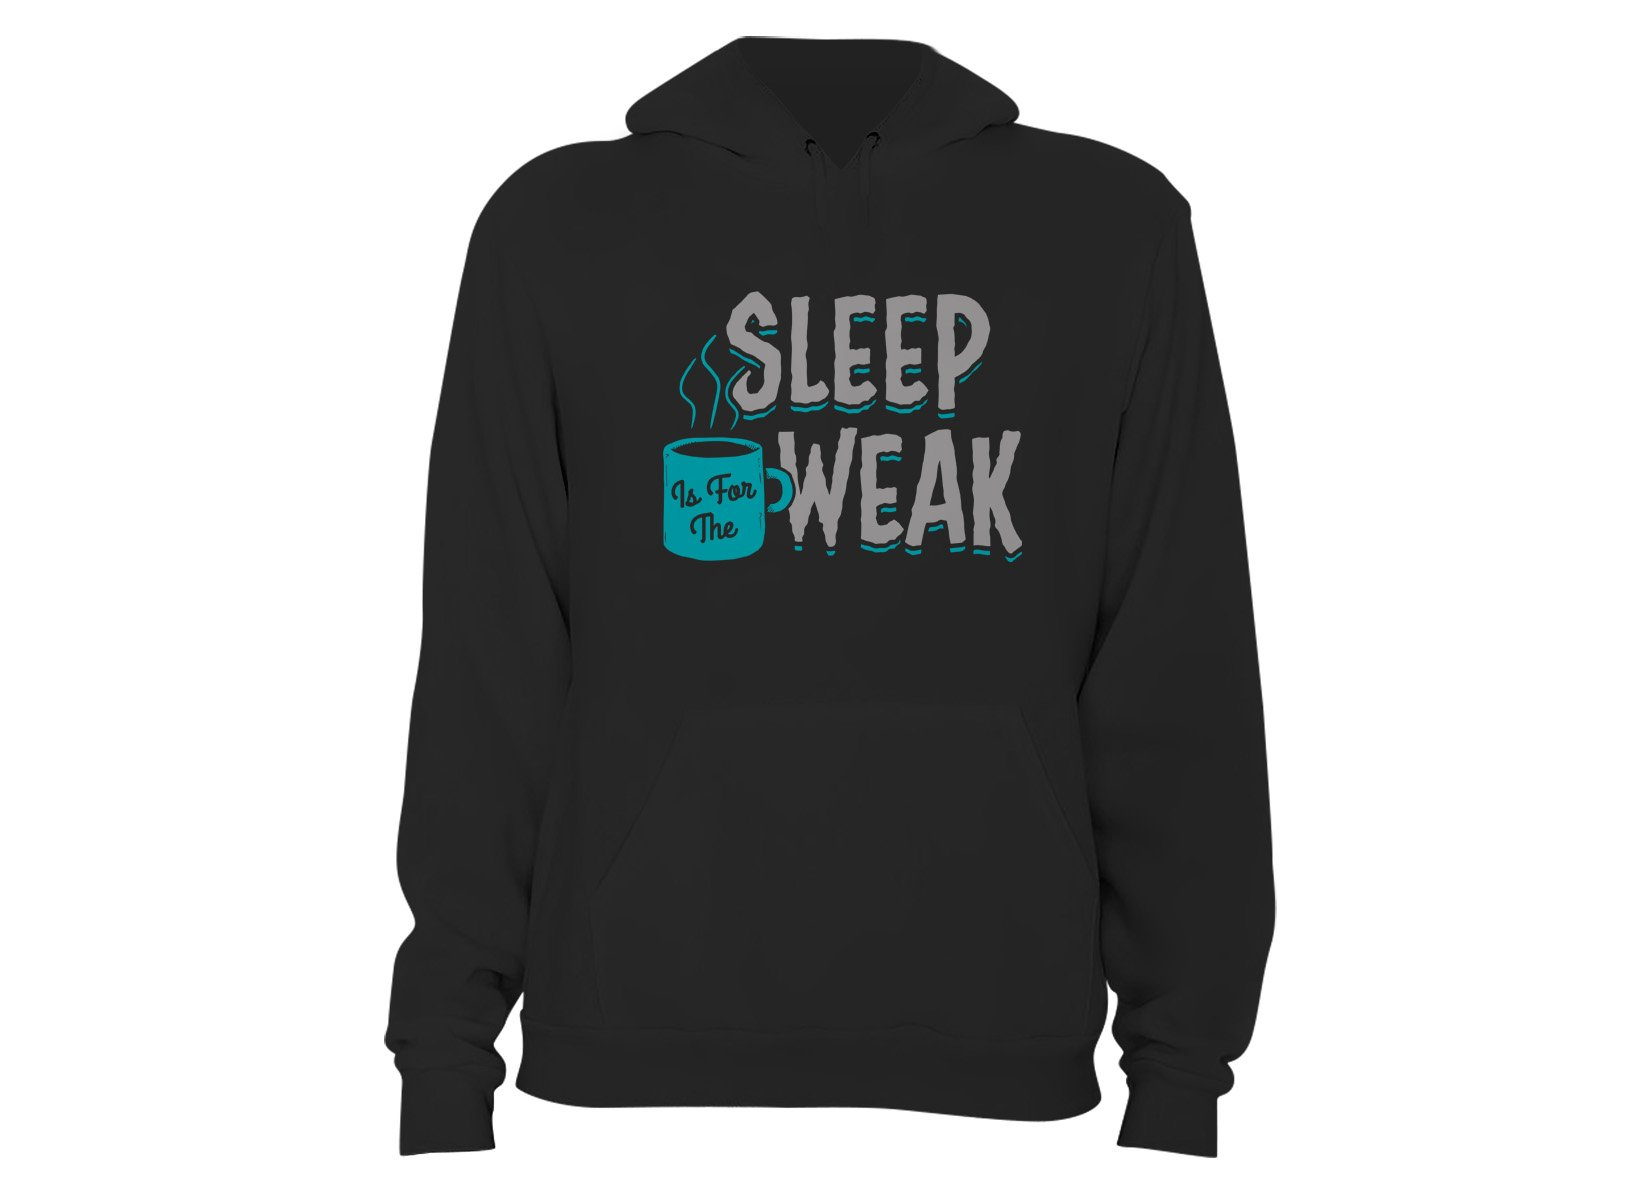 Sleep Is For The Weak on Hoodie